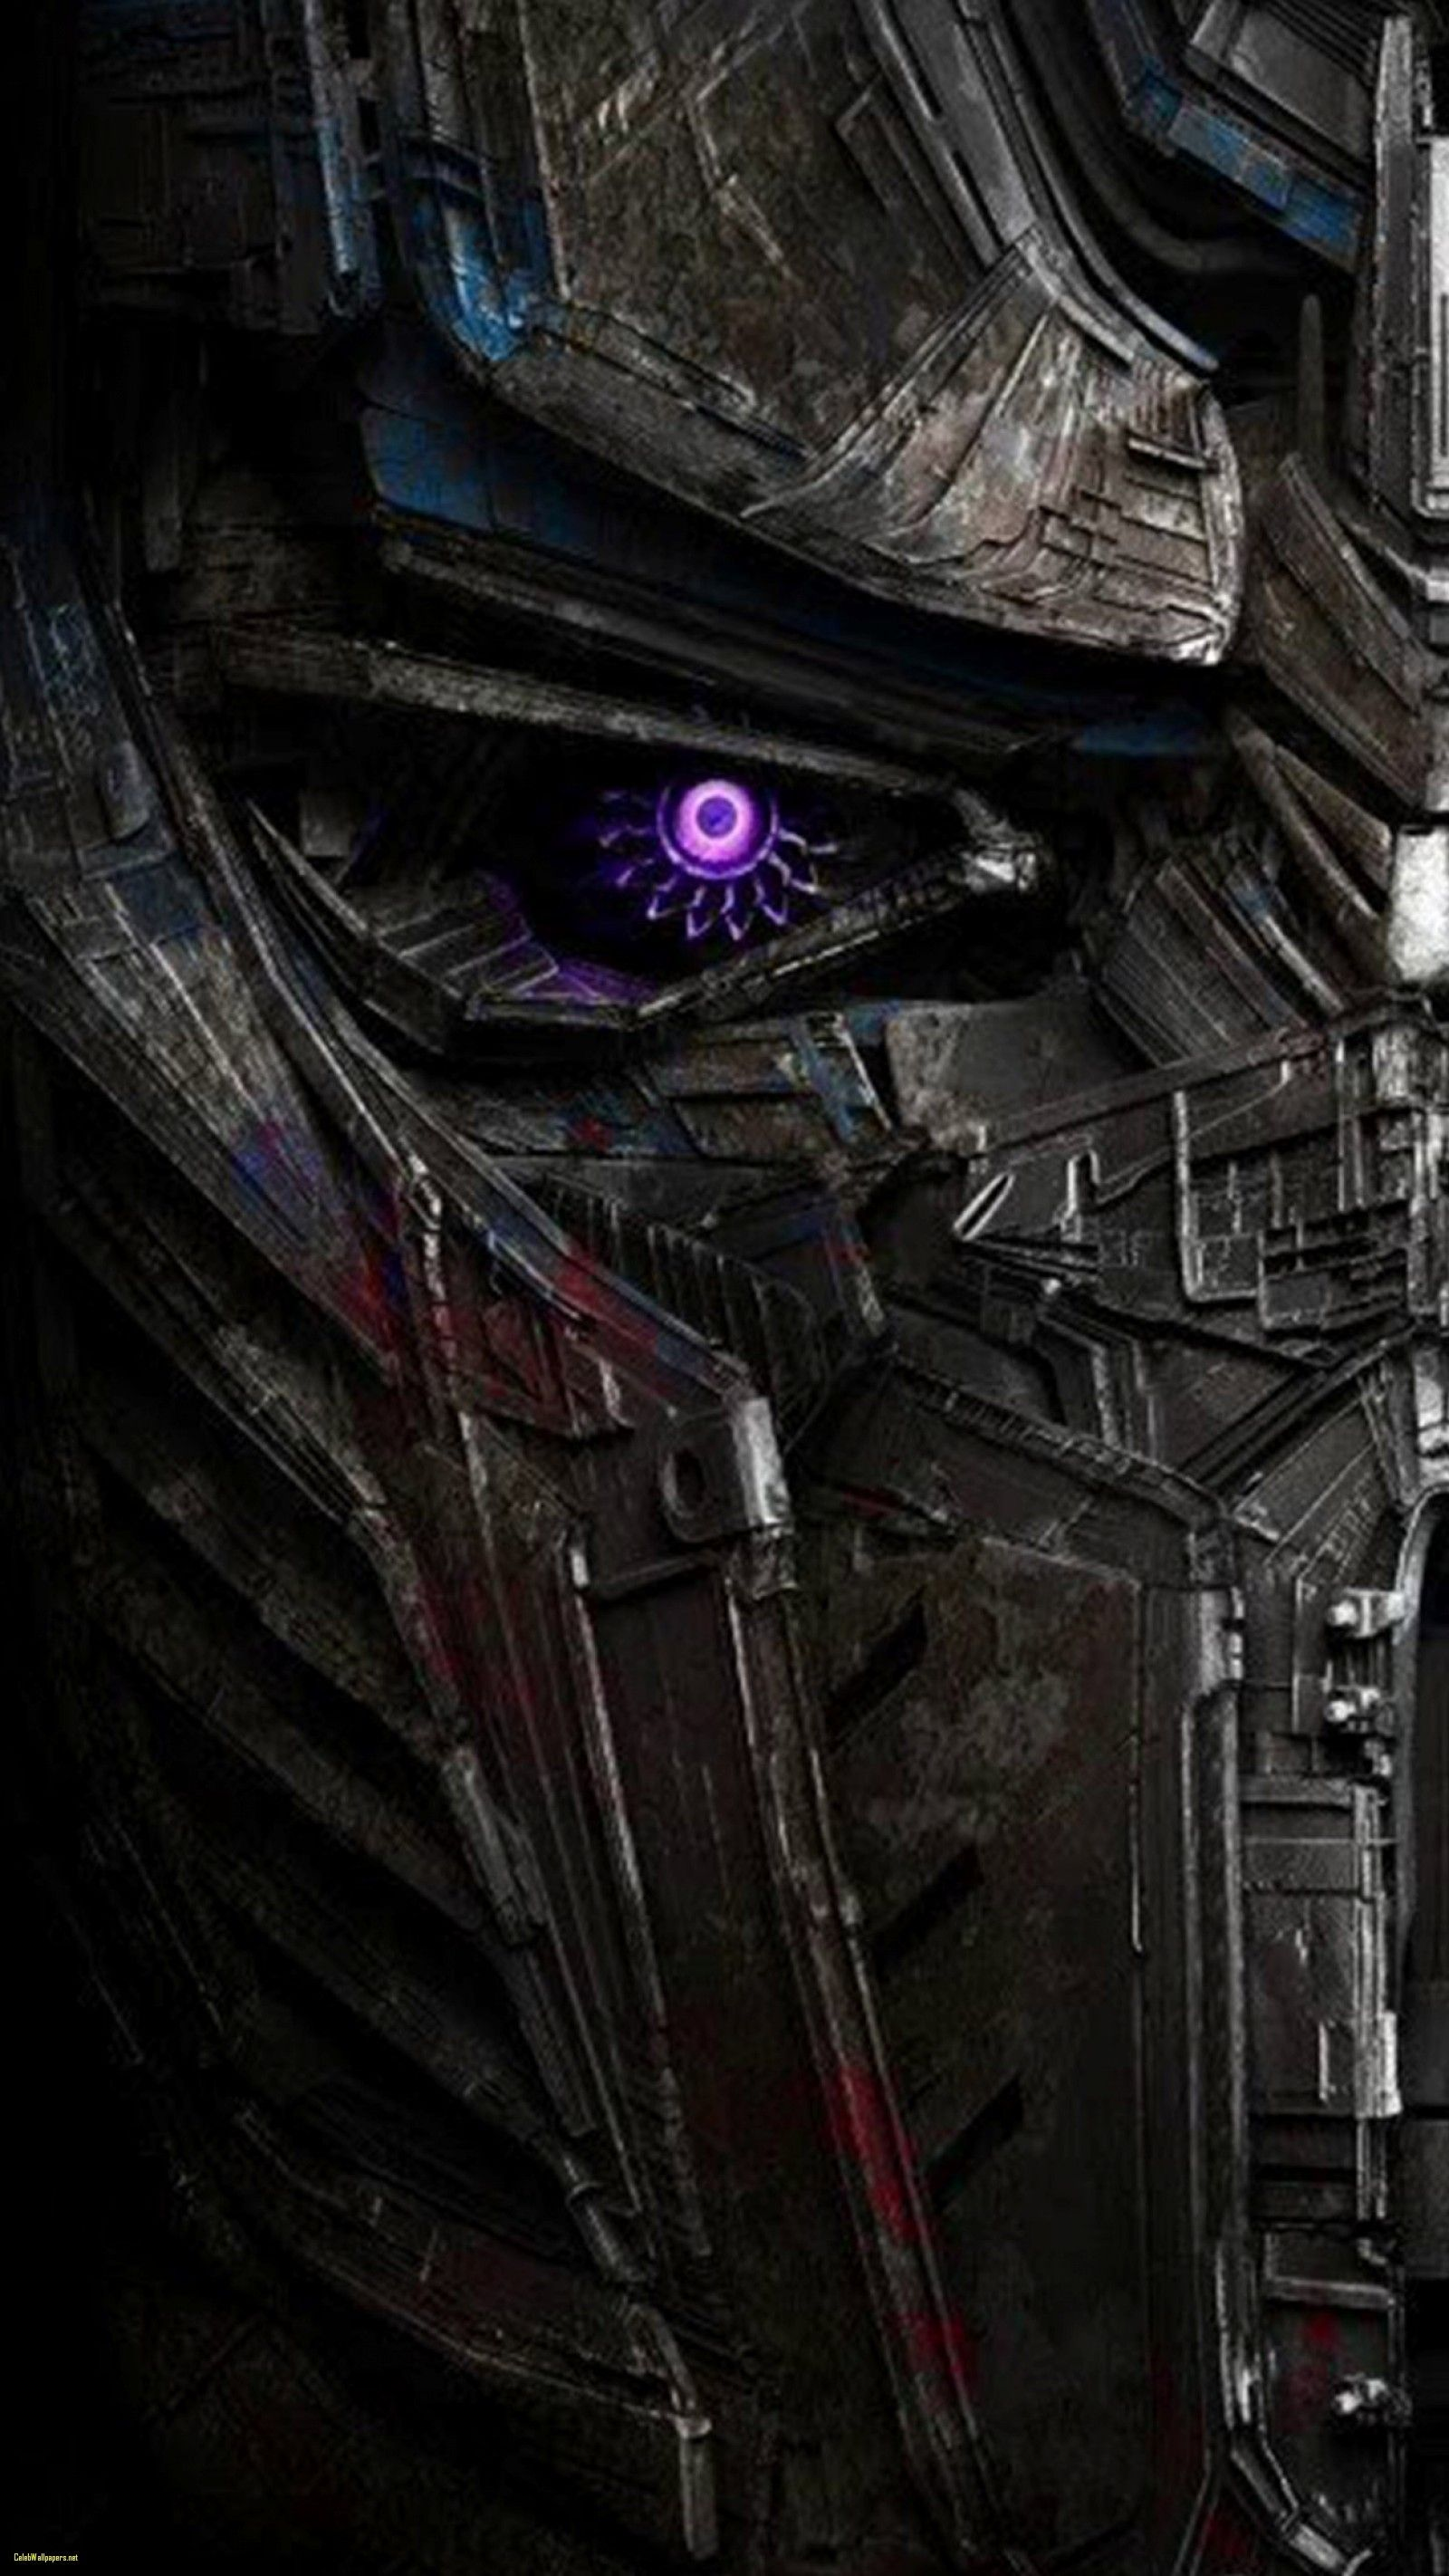 71 Transformers Iphone Wallpapers On Wallpaperplay Optimus Prime Wallpaper Transformers Optimus Prime Wallpaper Optimus Prime